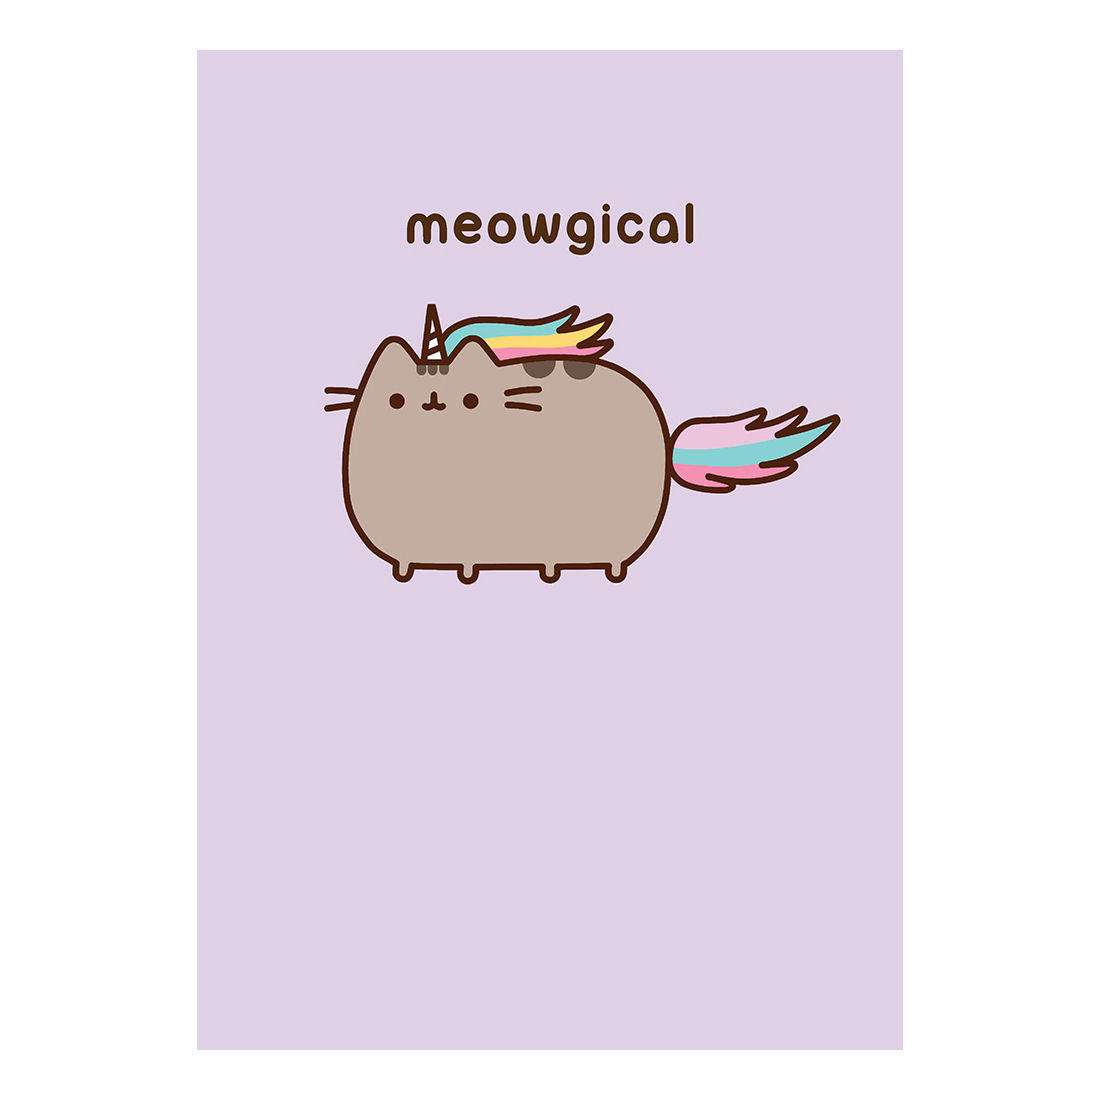 pusheen birthday card uk ; PUSH17-pusheen-meowgical-greeting-card